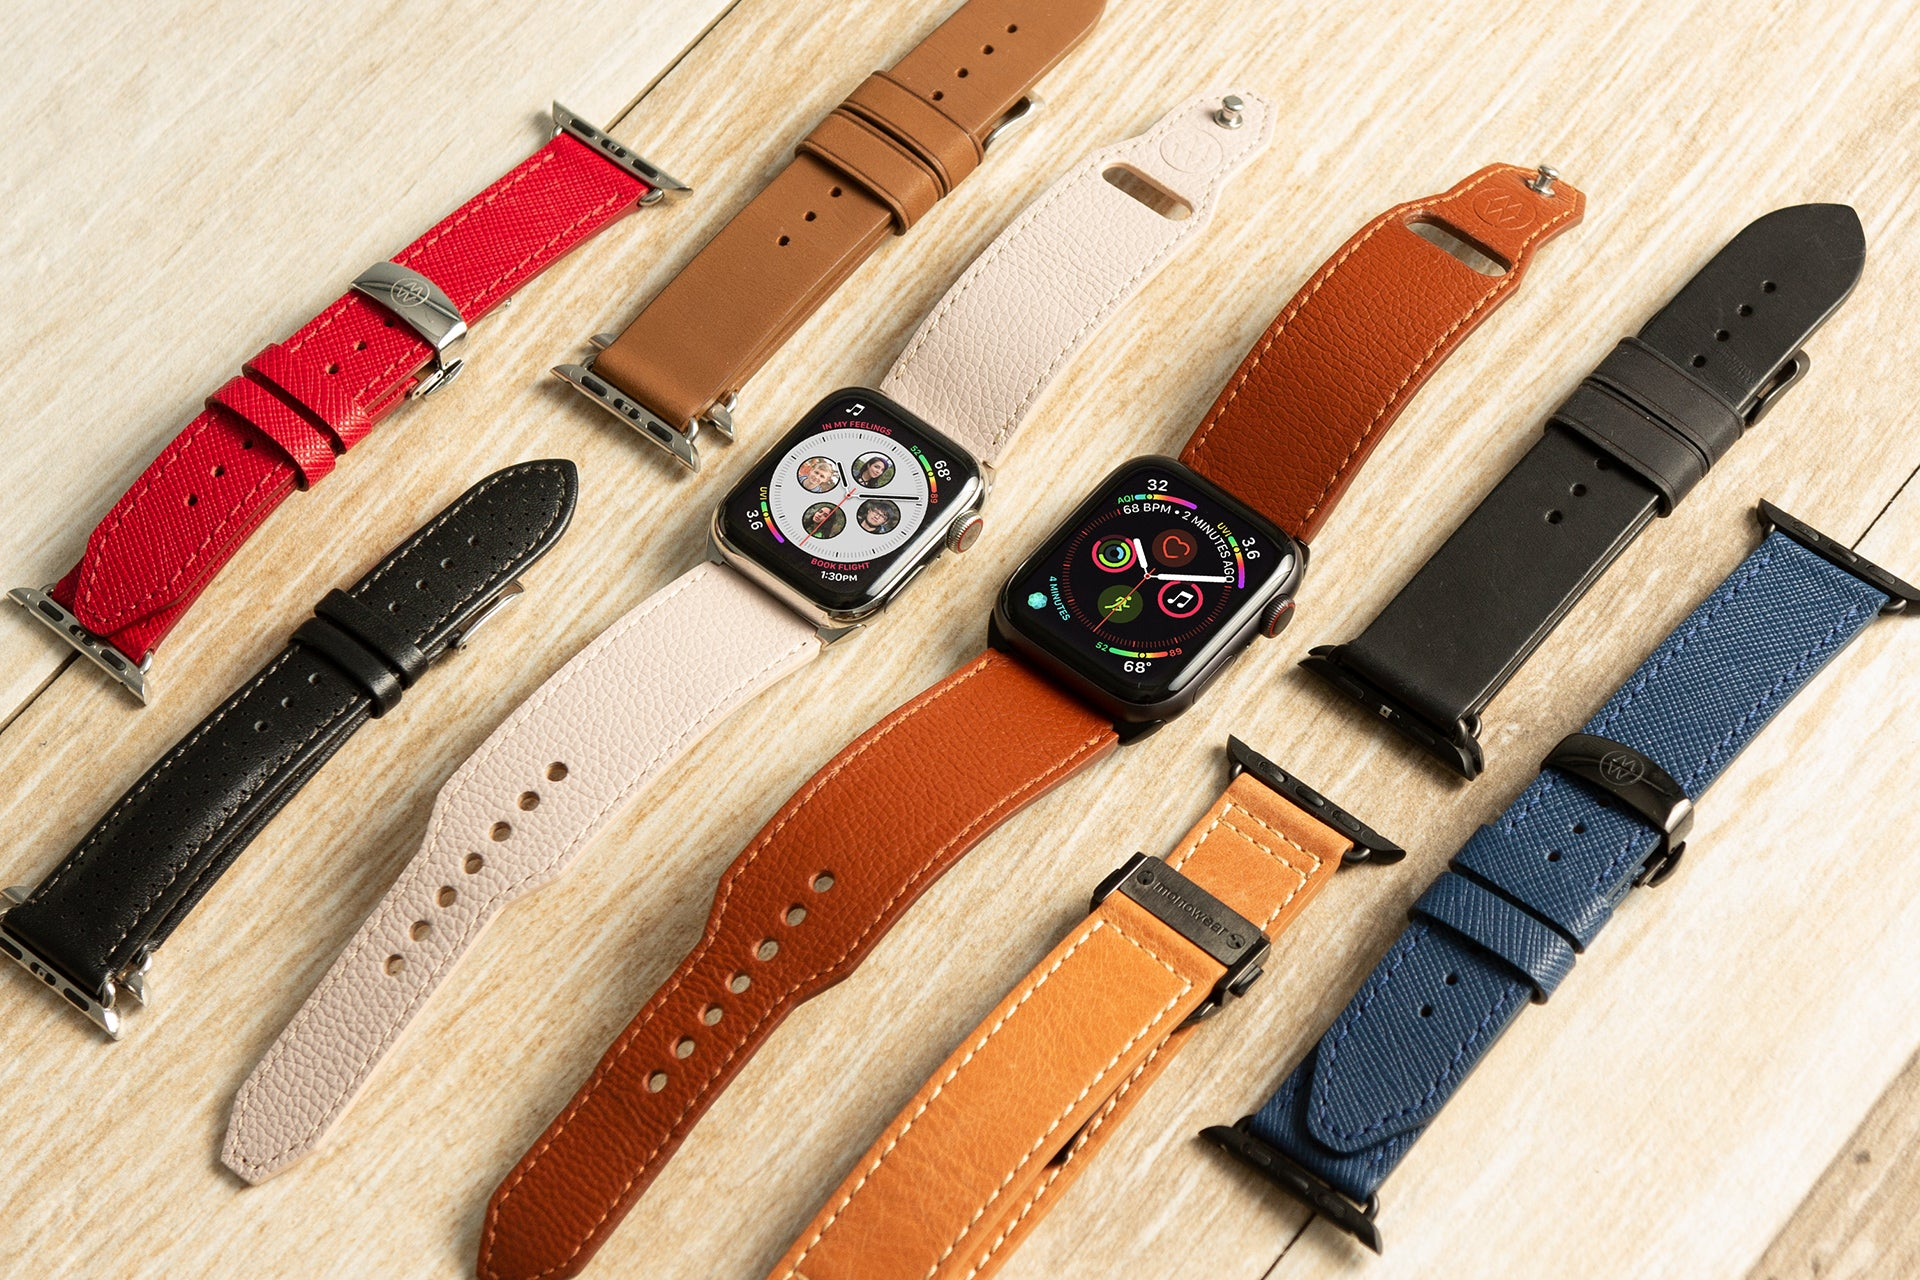 Contemporary Leather Cuff - Apple Watch Monowear